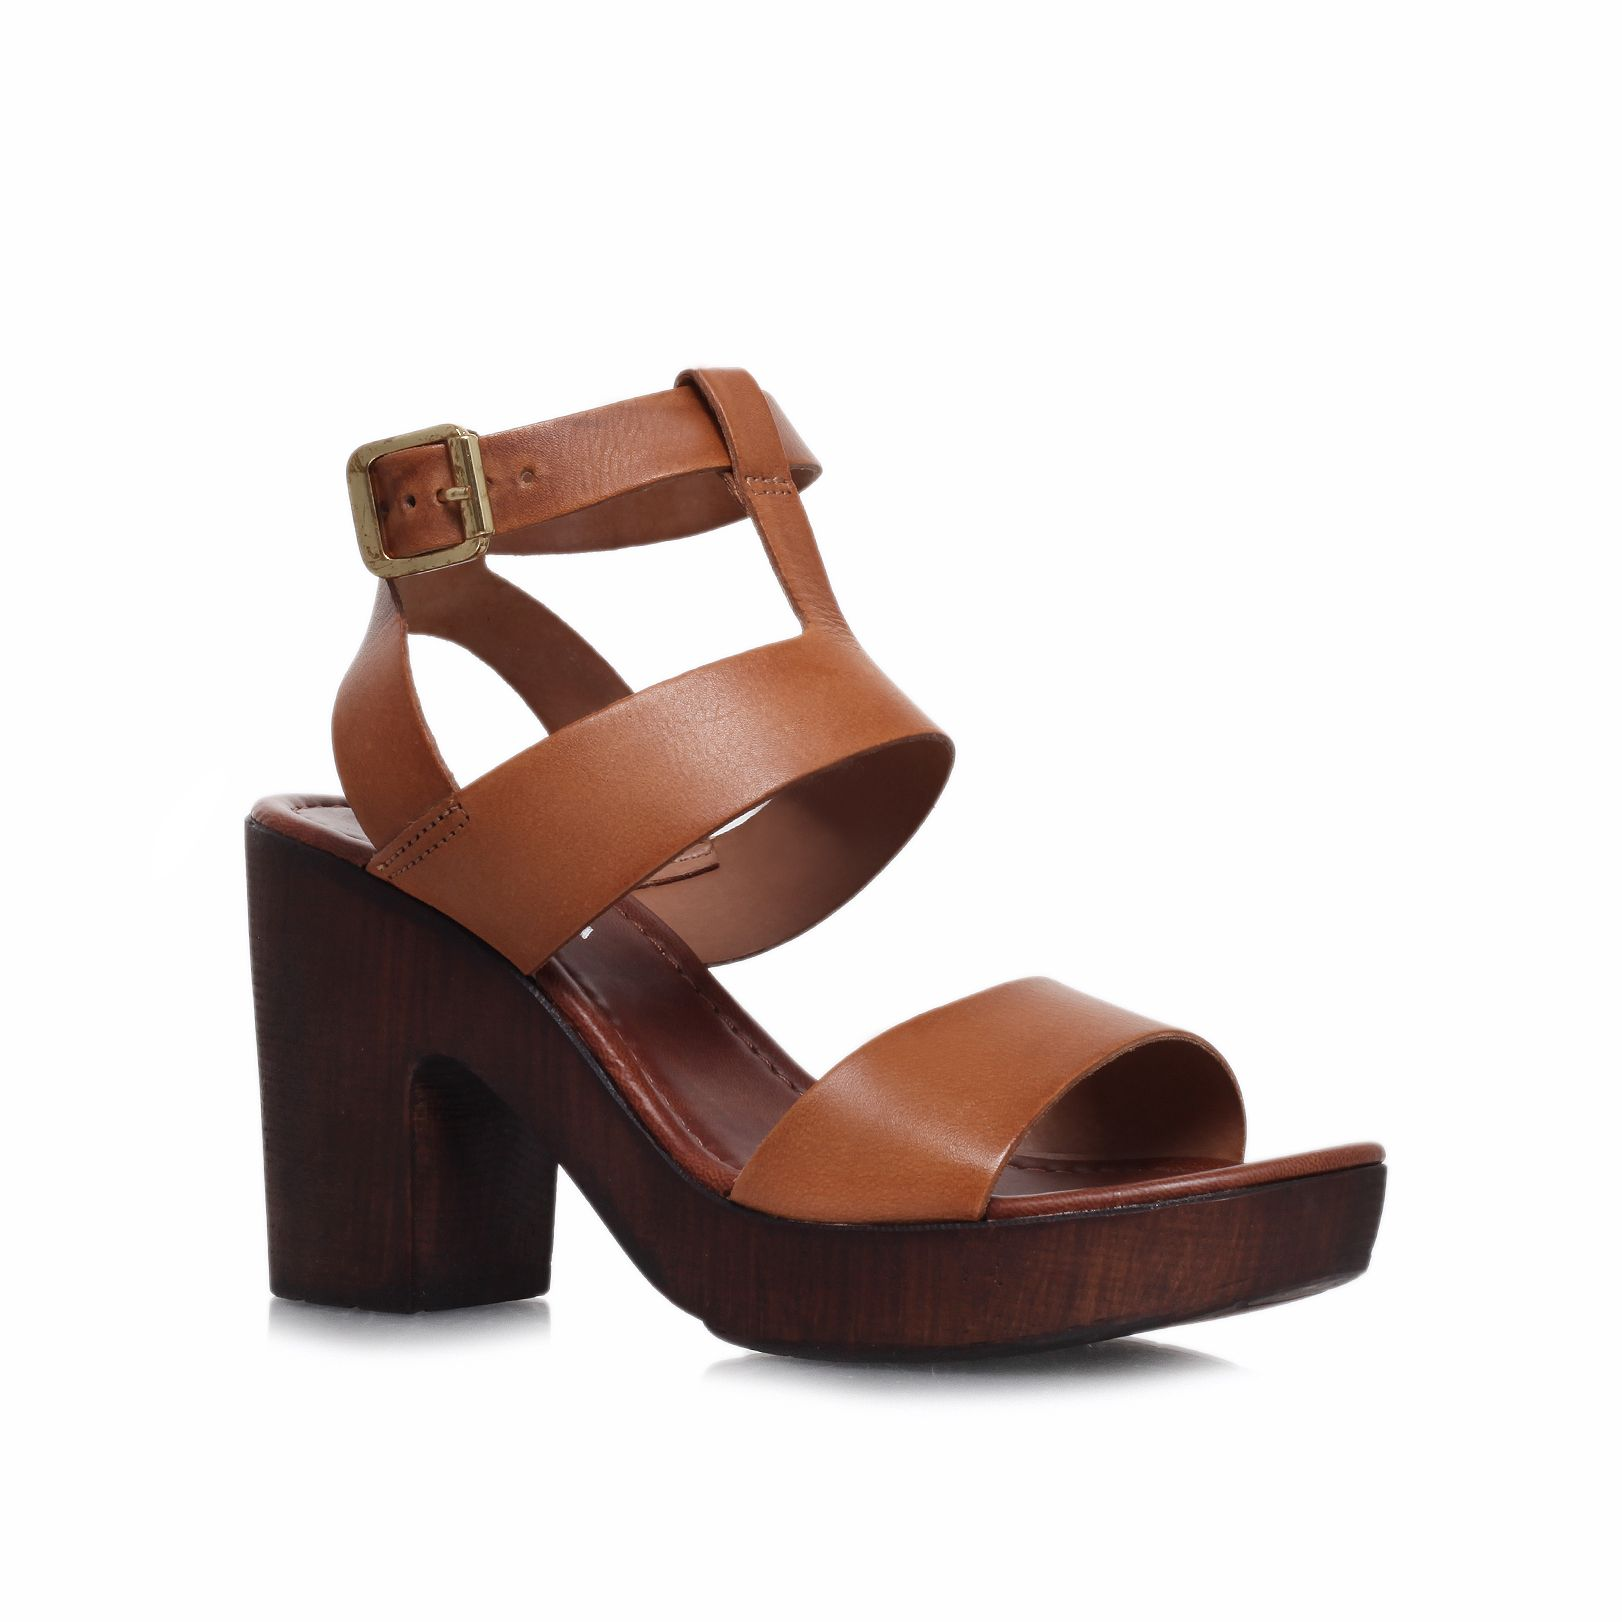 Kolt high heel sandals